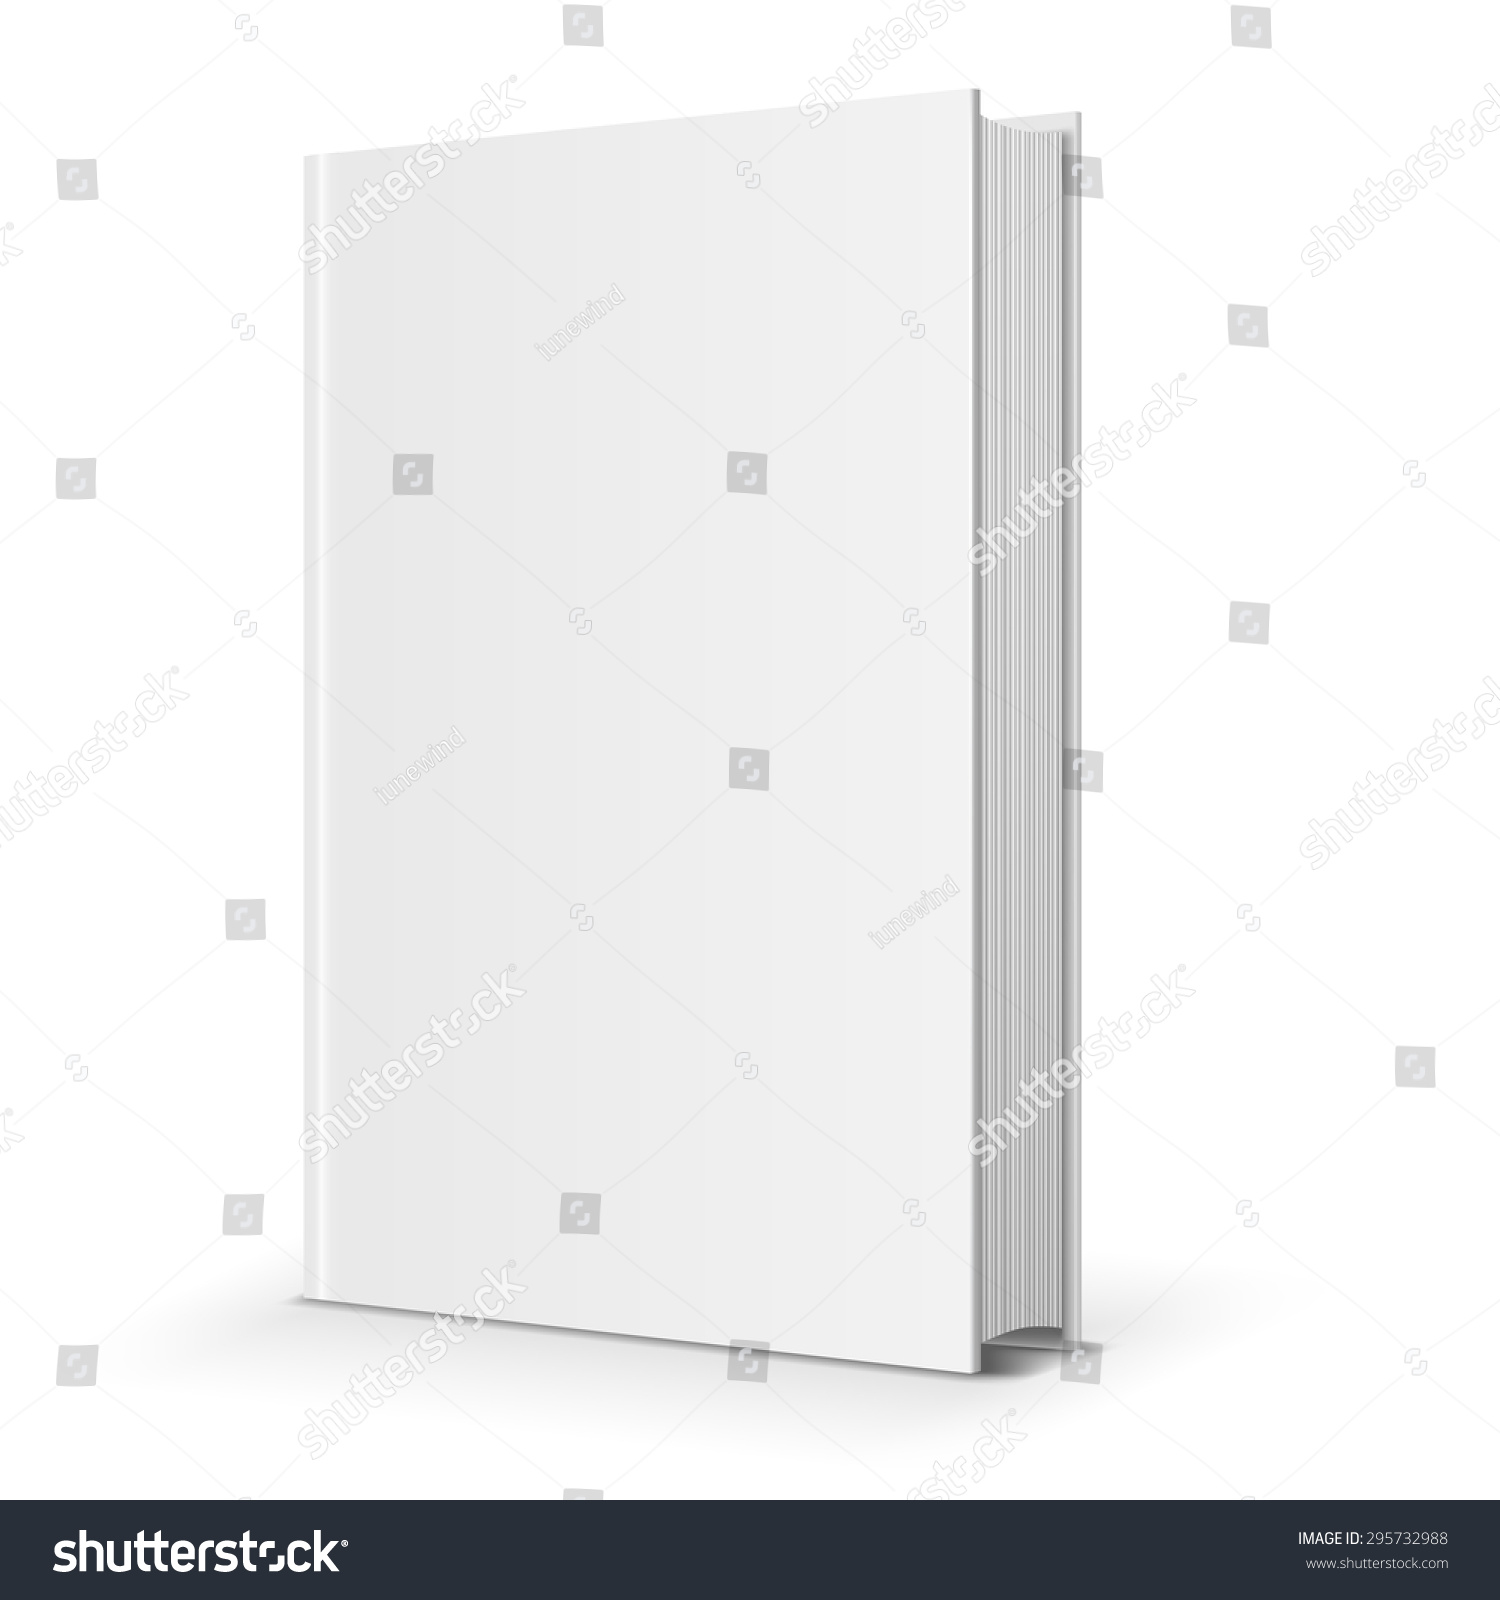 Blank Book Cover Vector Illustration Free : Blank book cover vector illustration over stock